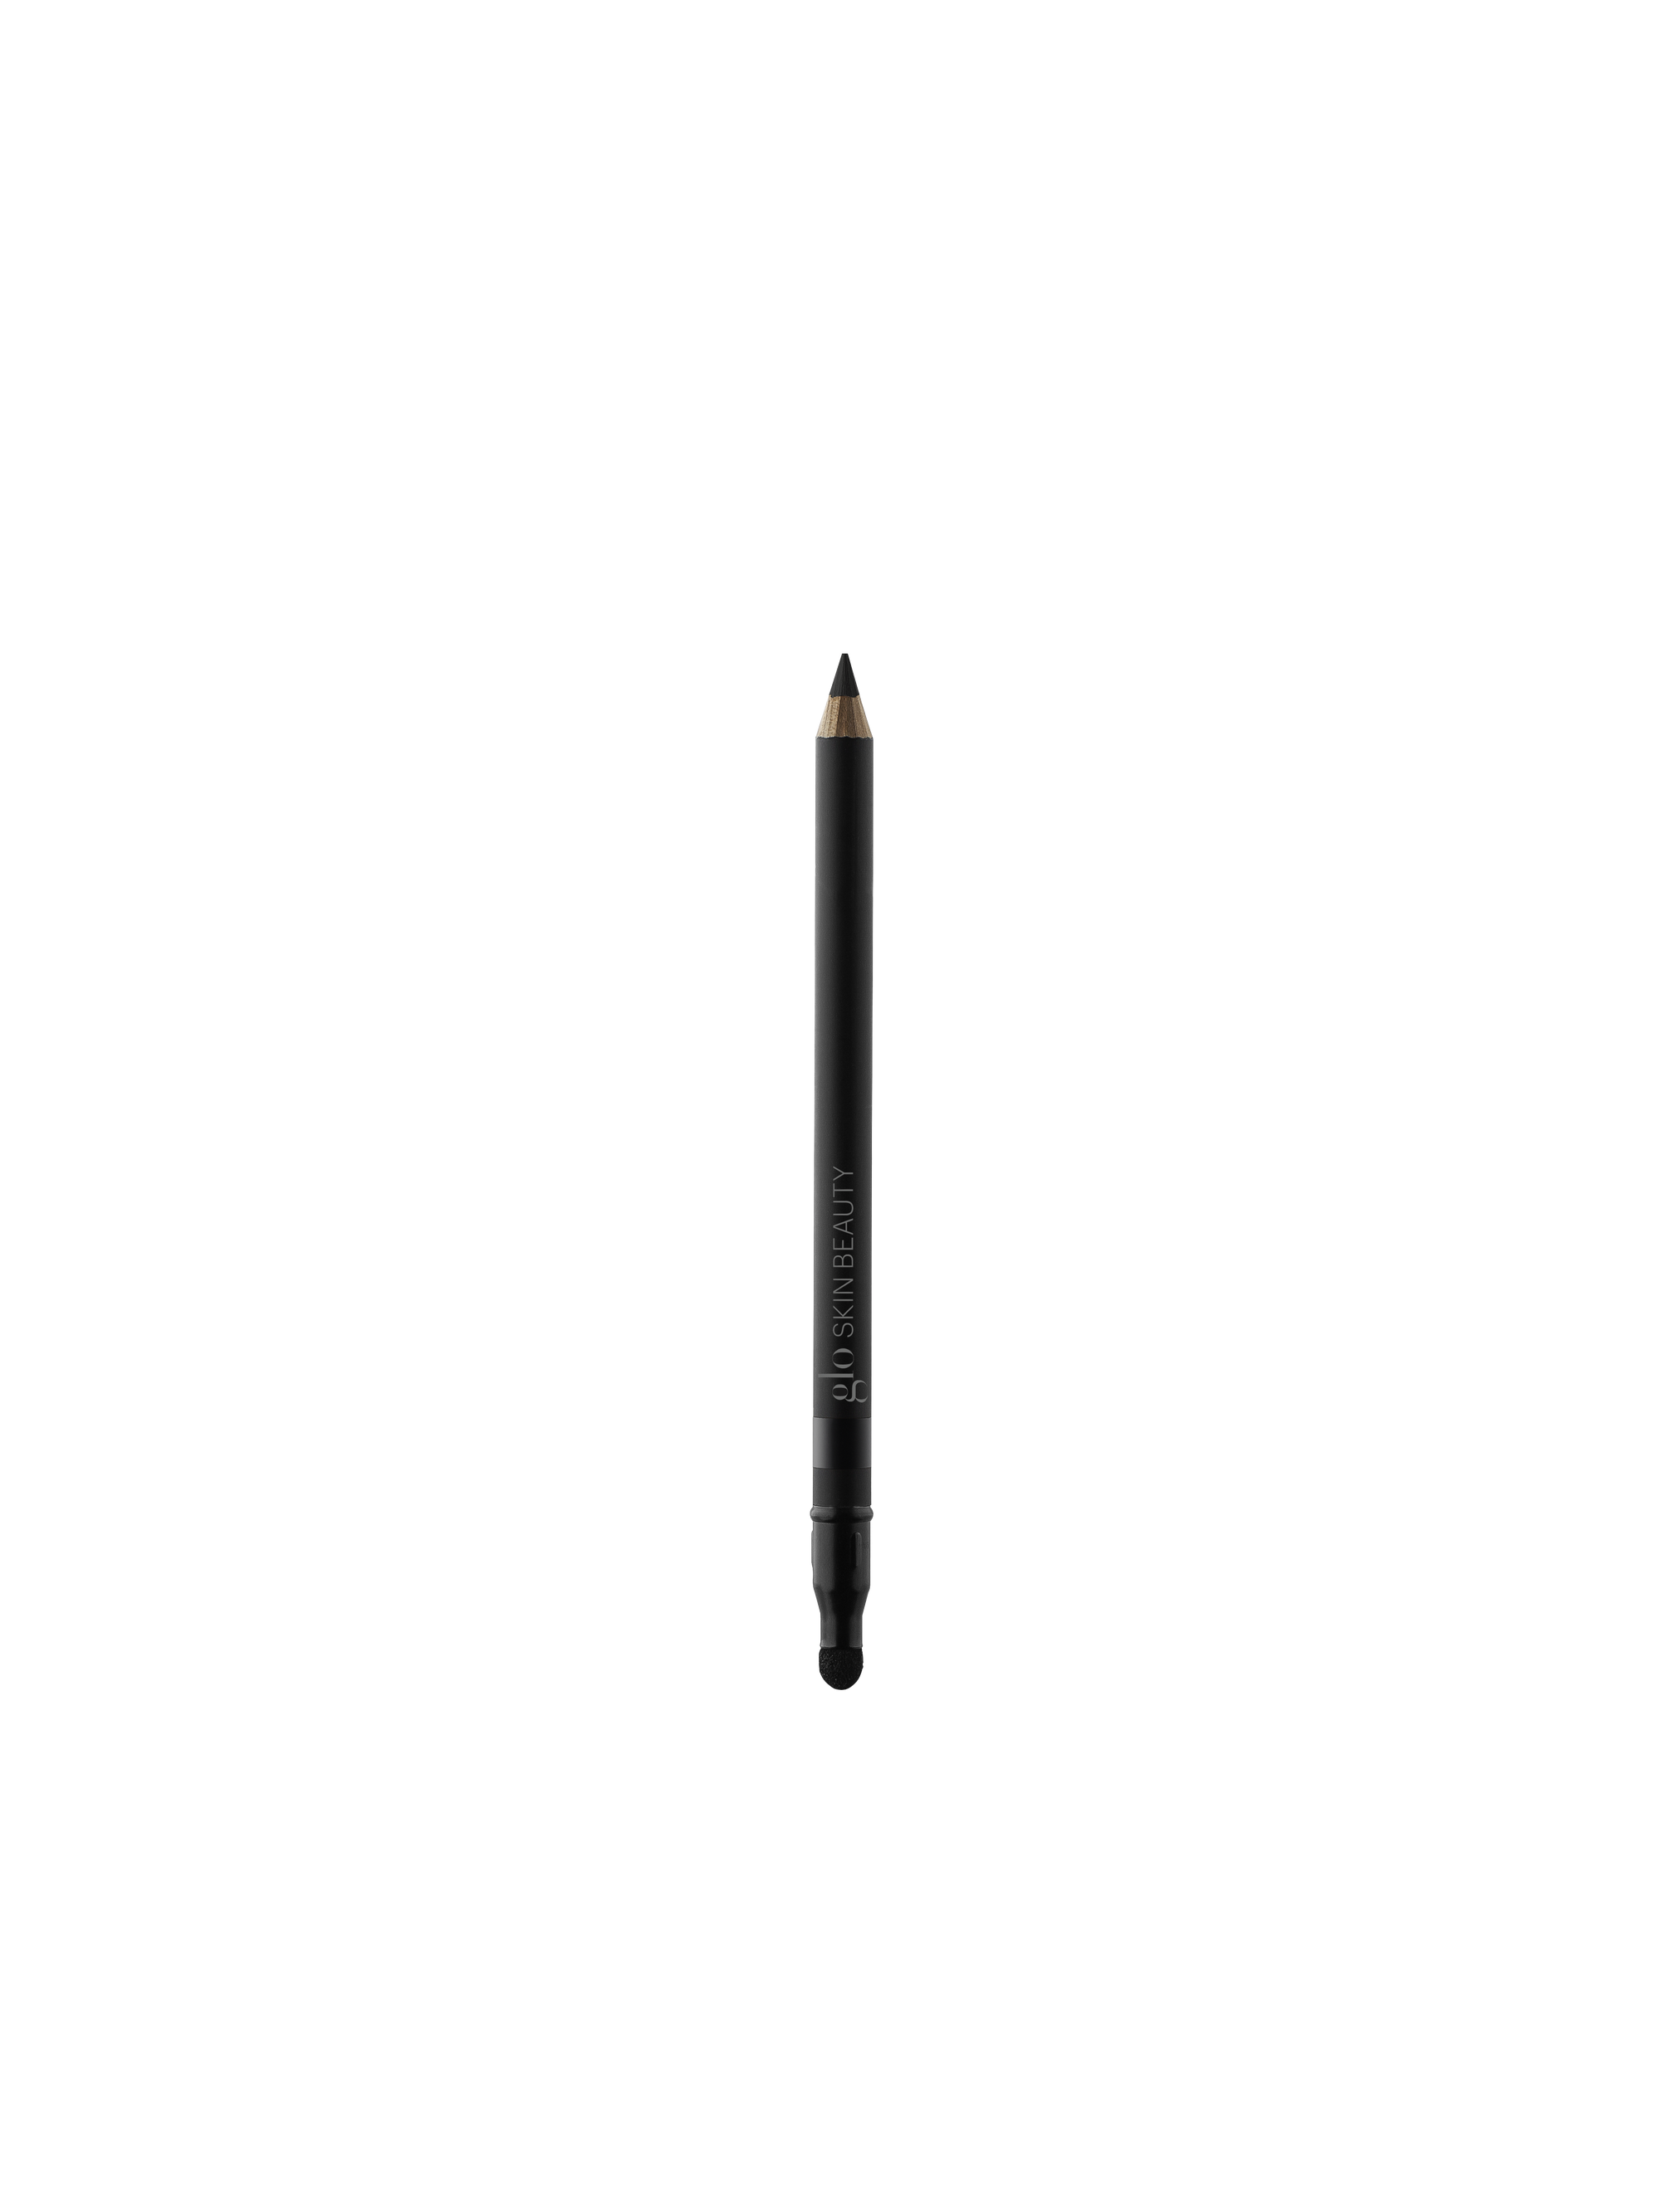 Image of Precision Eye Pencil